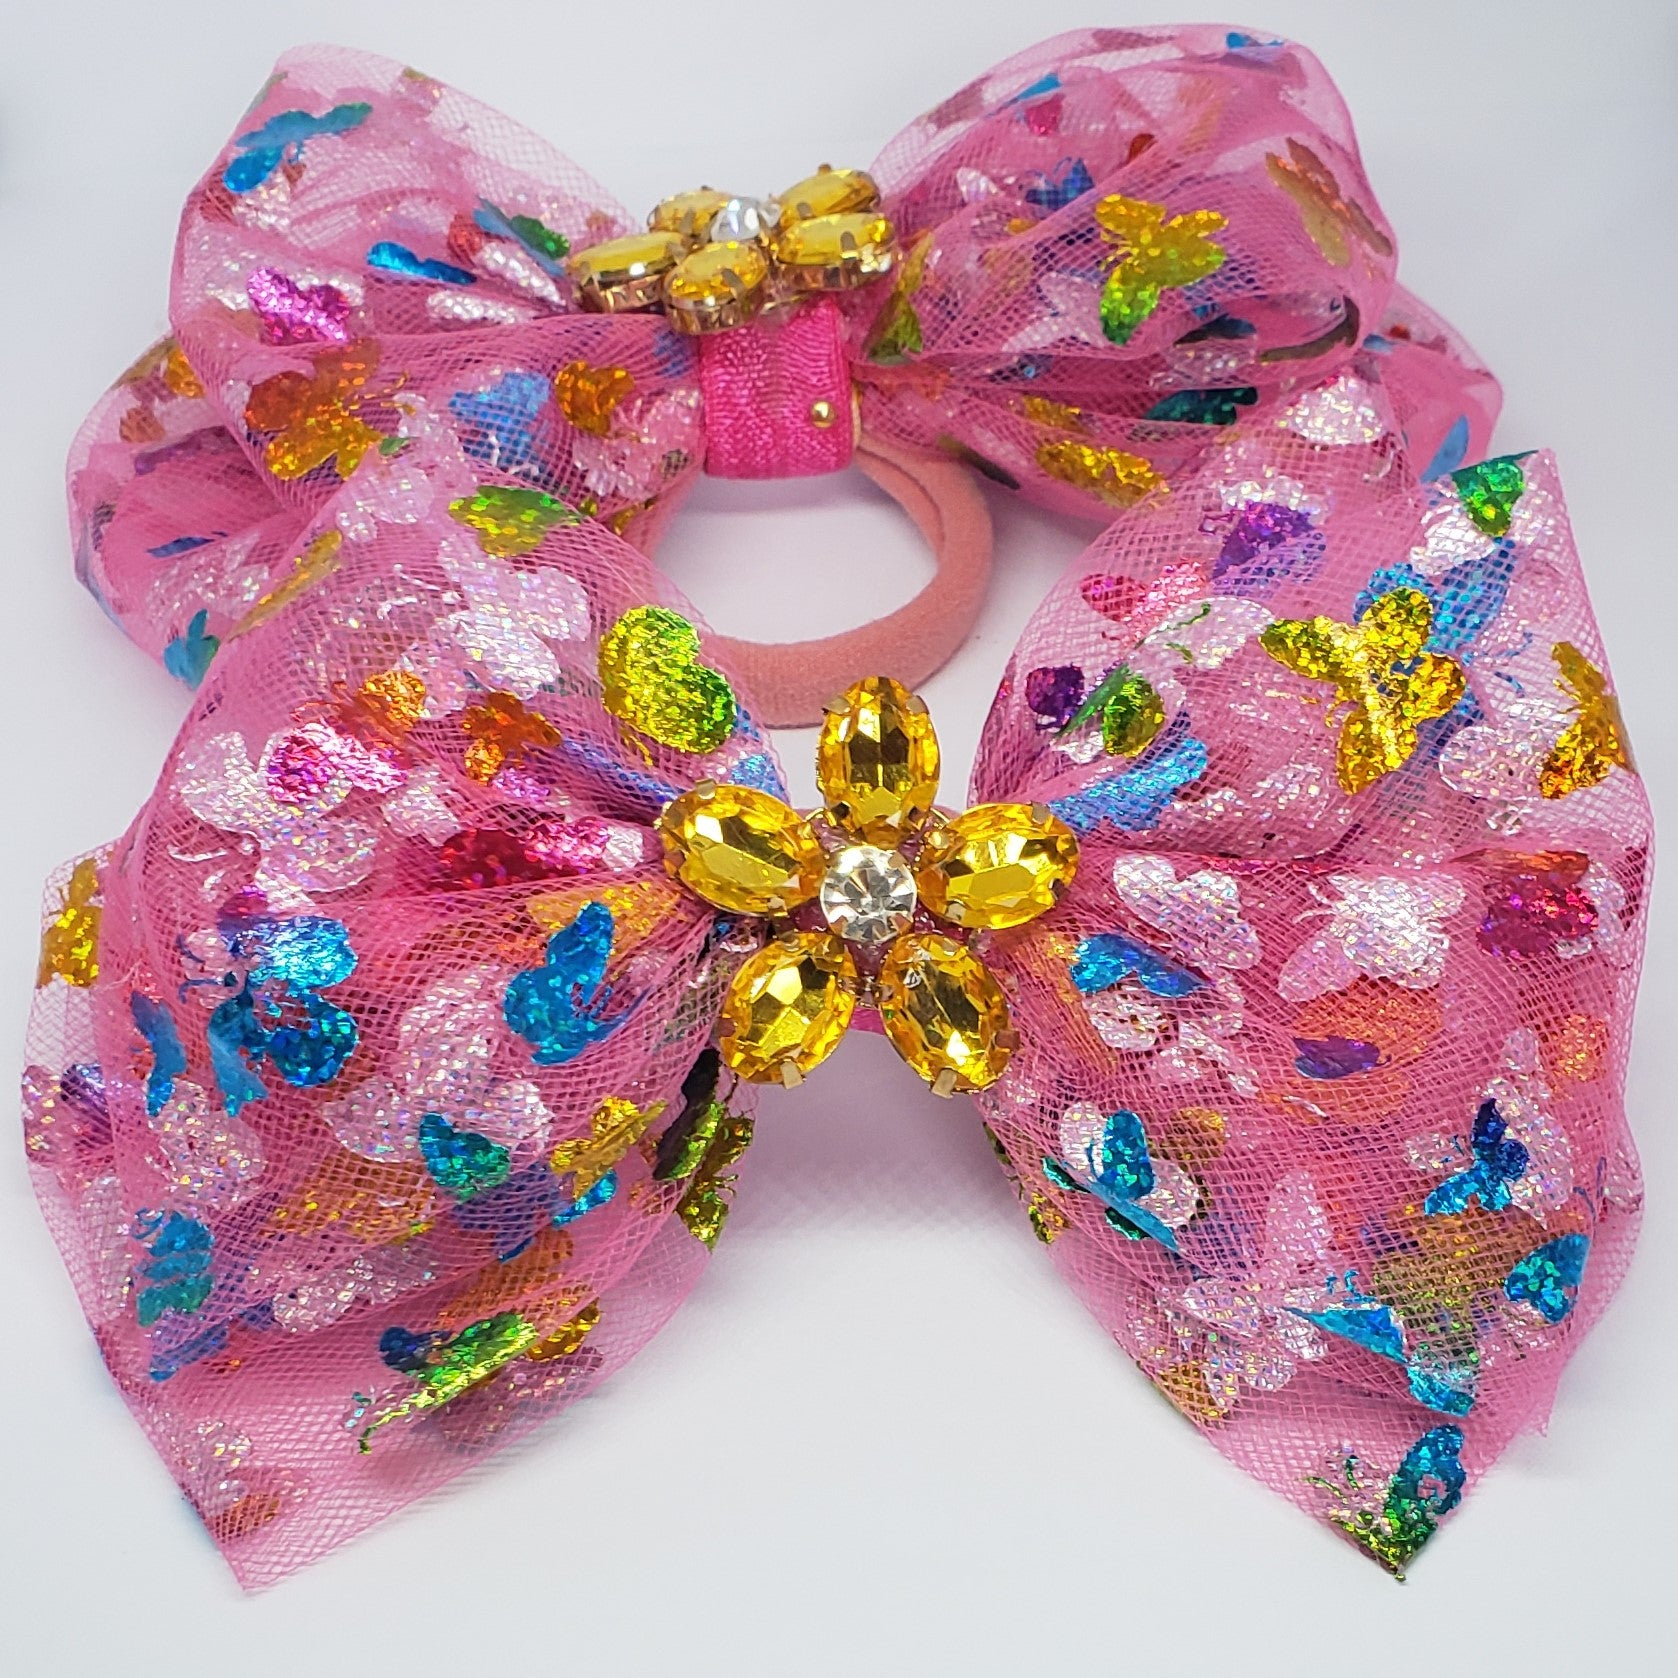 Danielle Butterflies & Amber Flower Bow in Pink Multi Tulle - Houzz of DVA Boutique